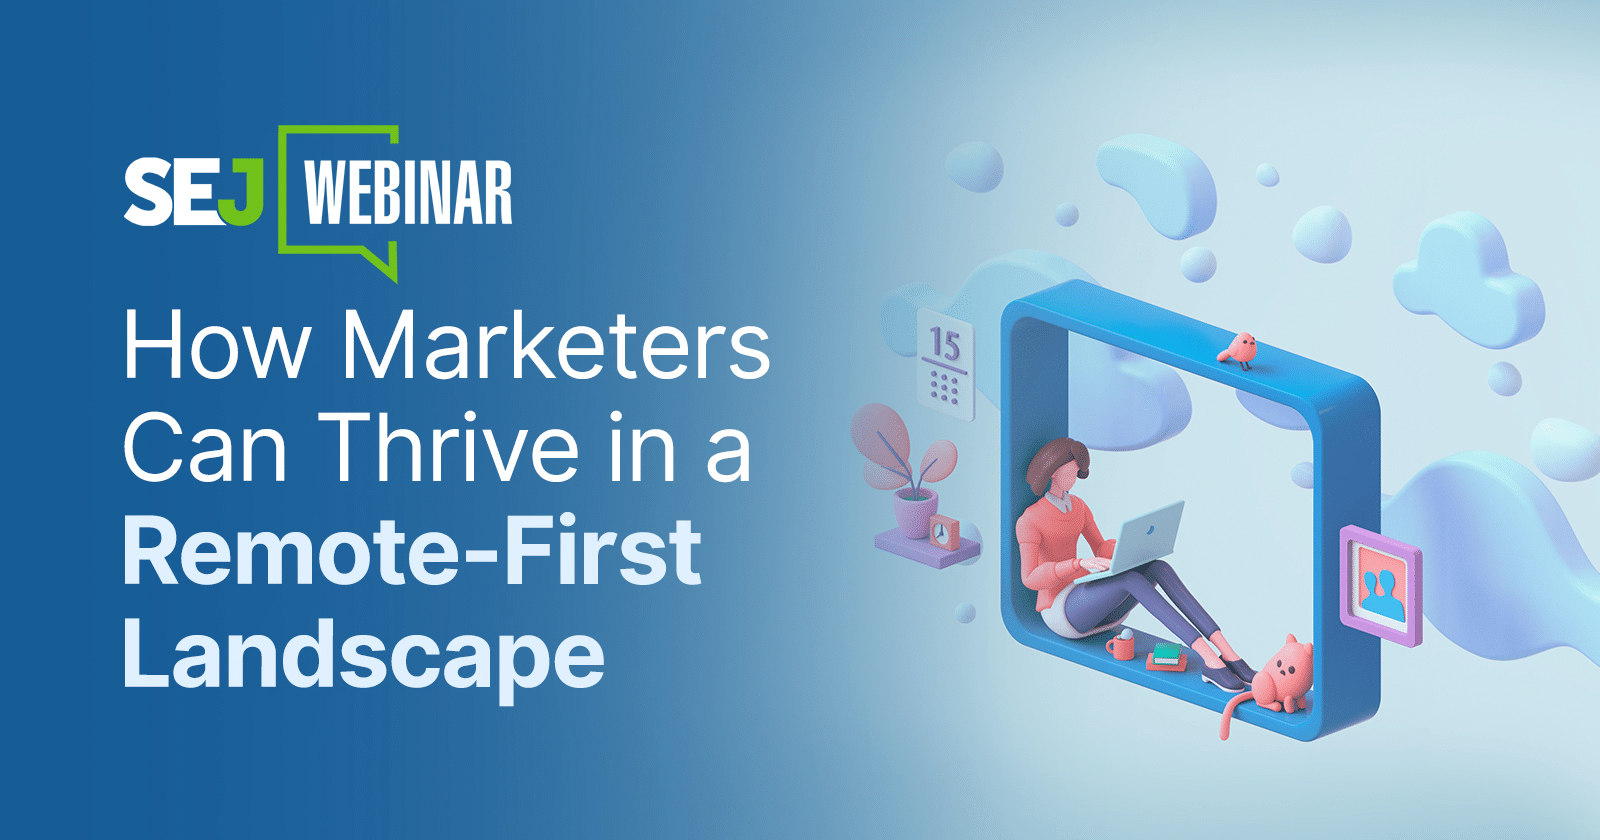 How Marketers Can Thrive in a Remote-First Landscape [Webinar] via @sejournal, @hethr_campbell